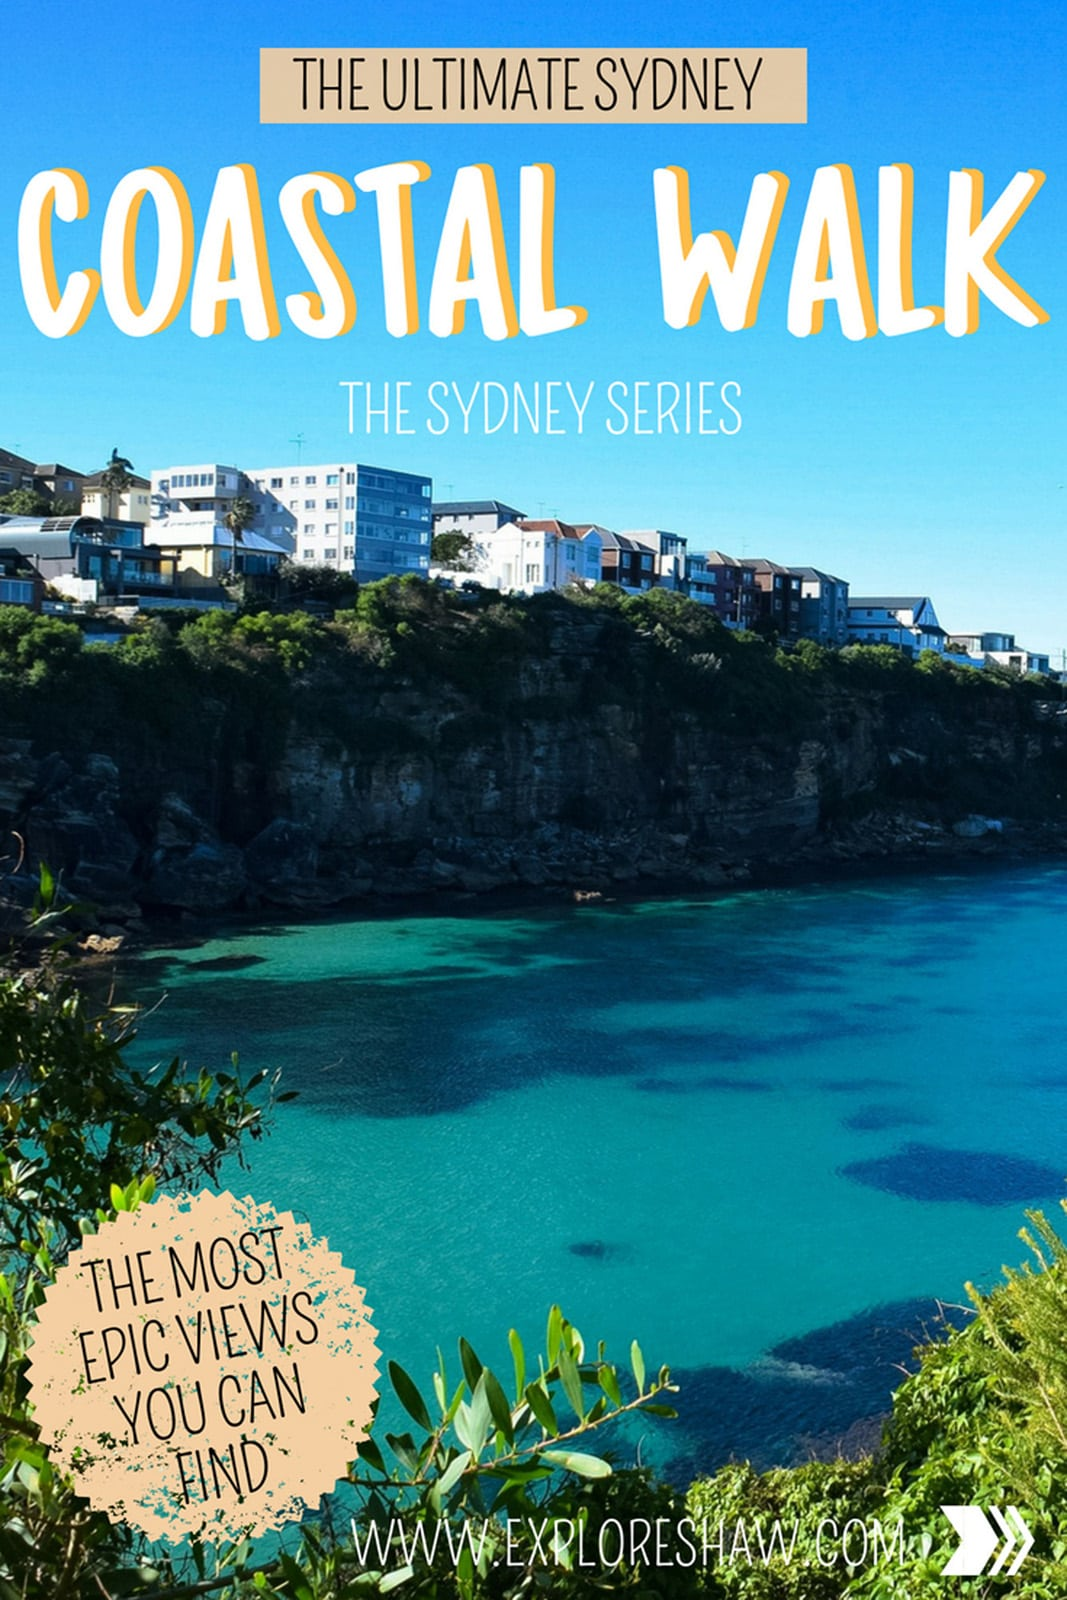 Get some fresh air and exercise while taking the ultimate coastal walk in Sydney from Bondi Beach all the way to Coogee - offering some of the best coastal views in Sydney.